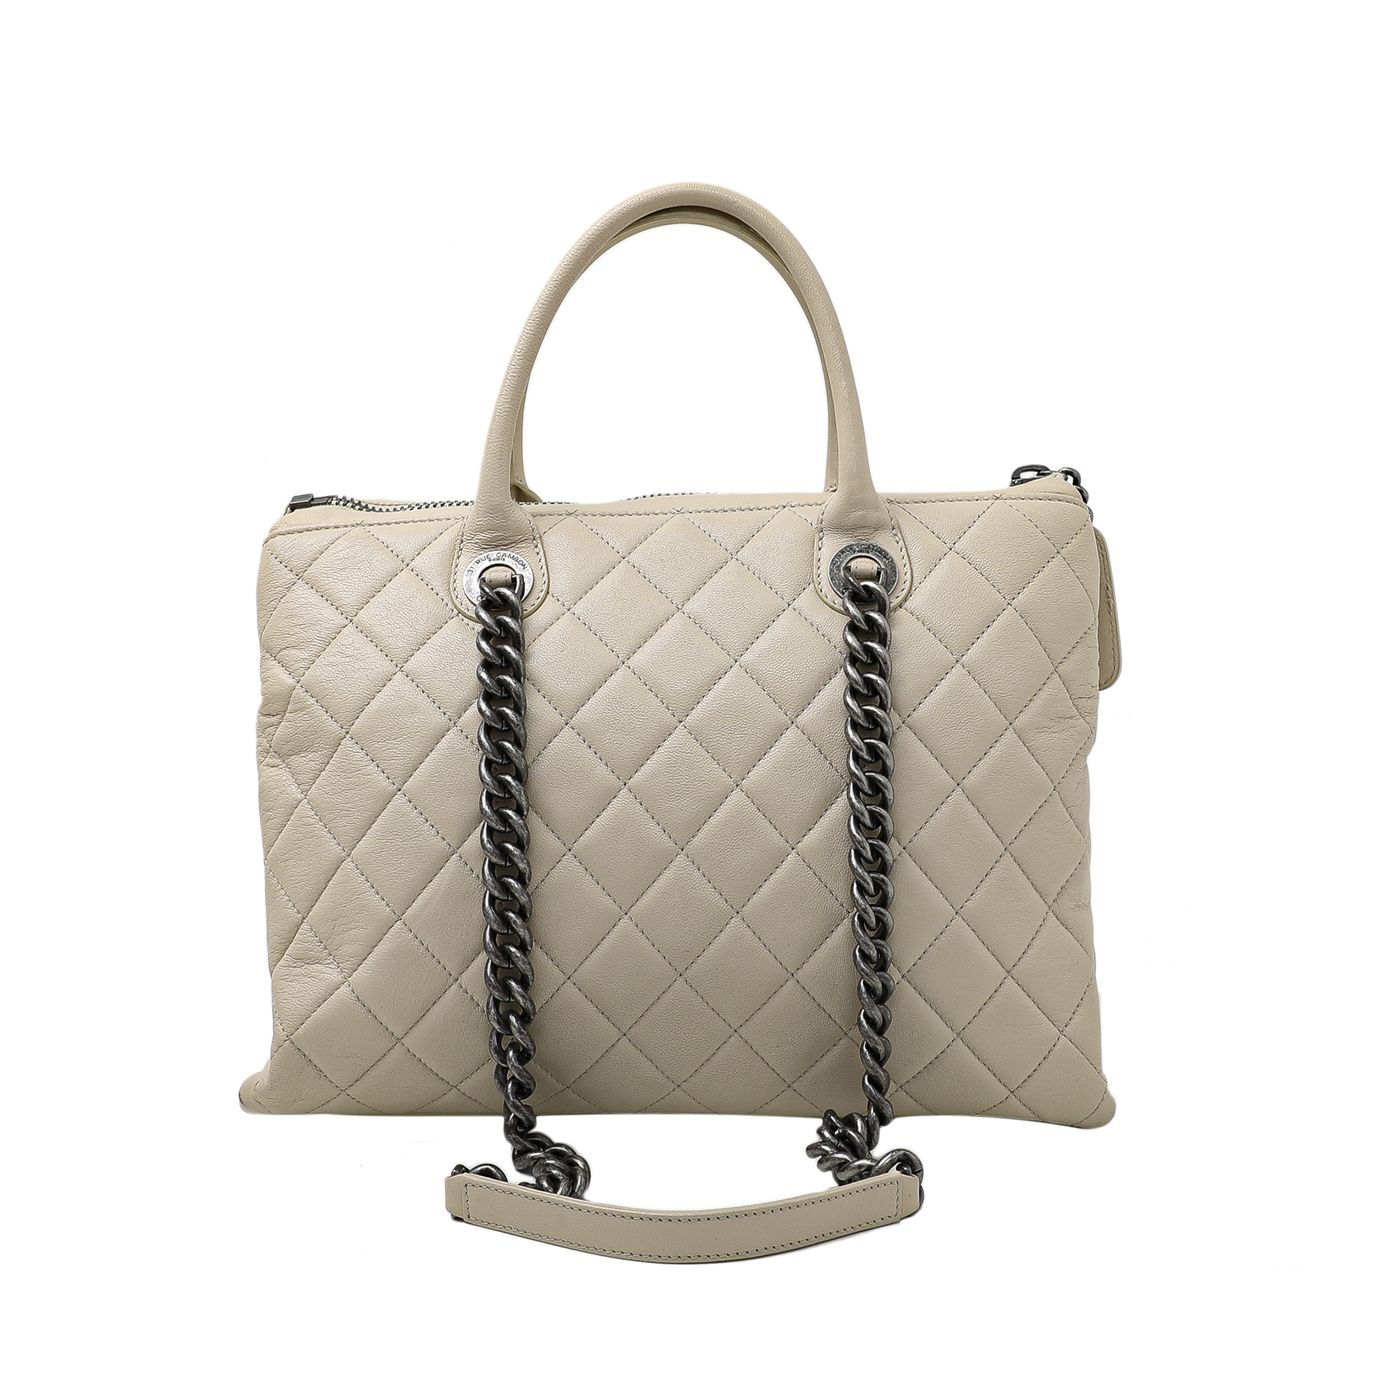 Chanel Light Beige Removable Chain 2 Way Shopping Bag